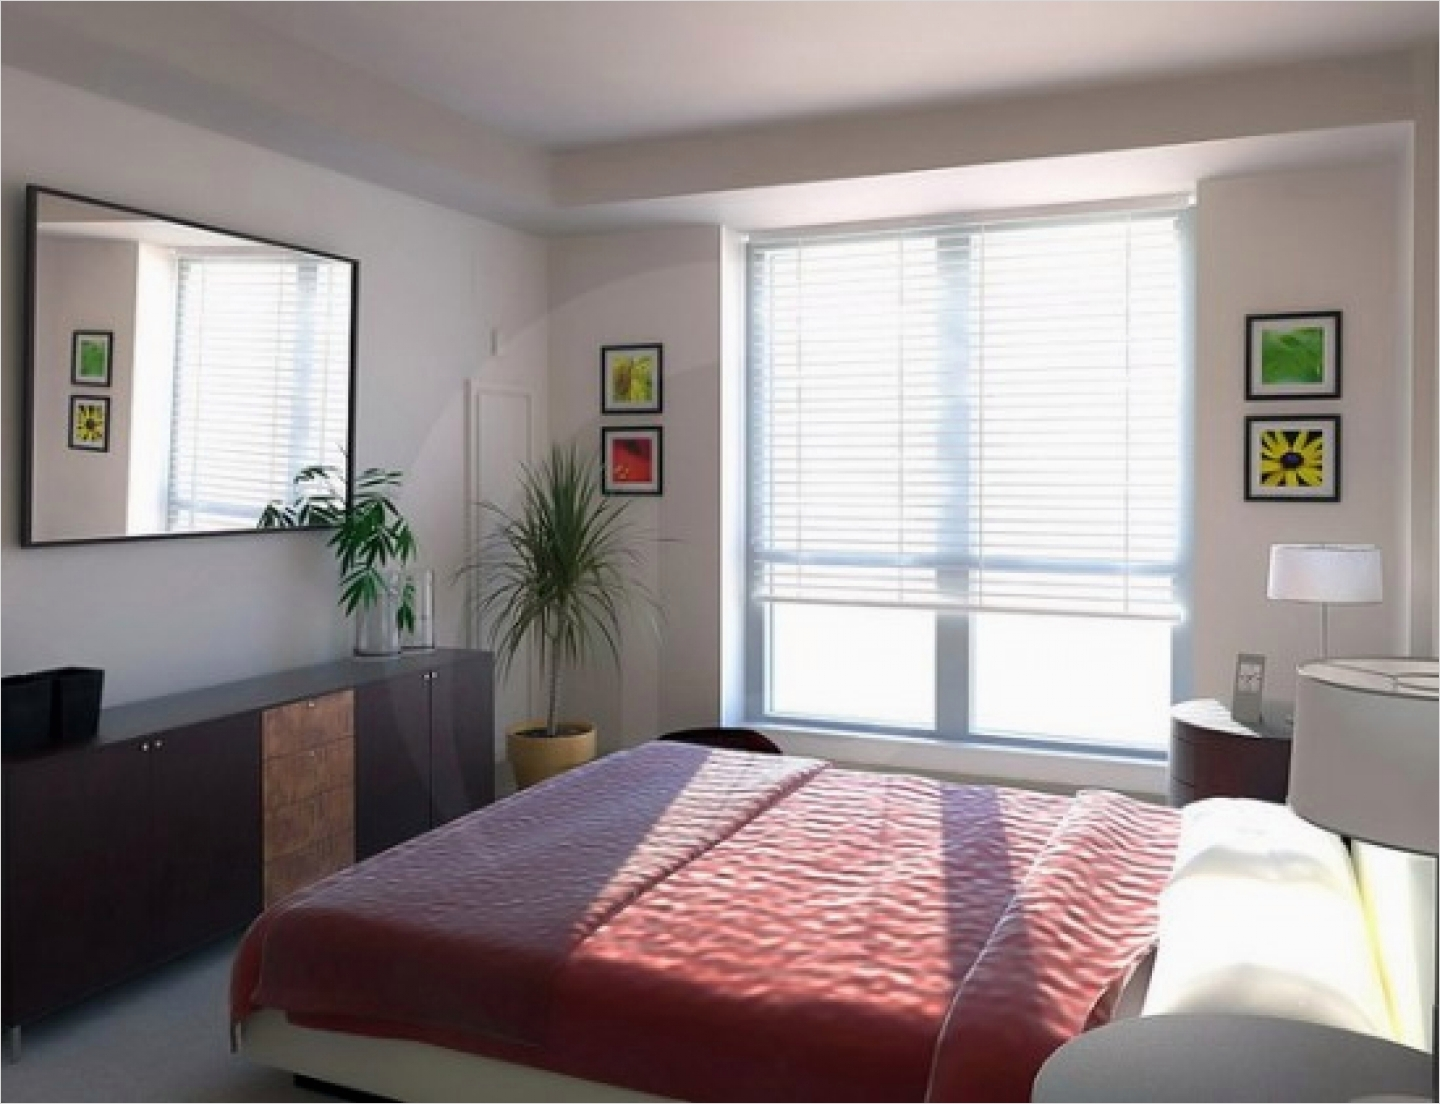 43 Stunning Small Bedroom Decorating Ideas On A Budget 76 Small Double Bedroom Decorating Ideas Bedrooms Small Bedroom Design Ideas On A Bud Design My 2